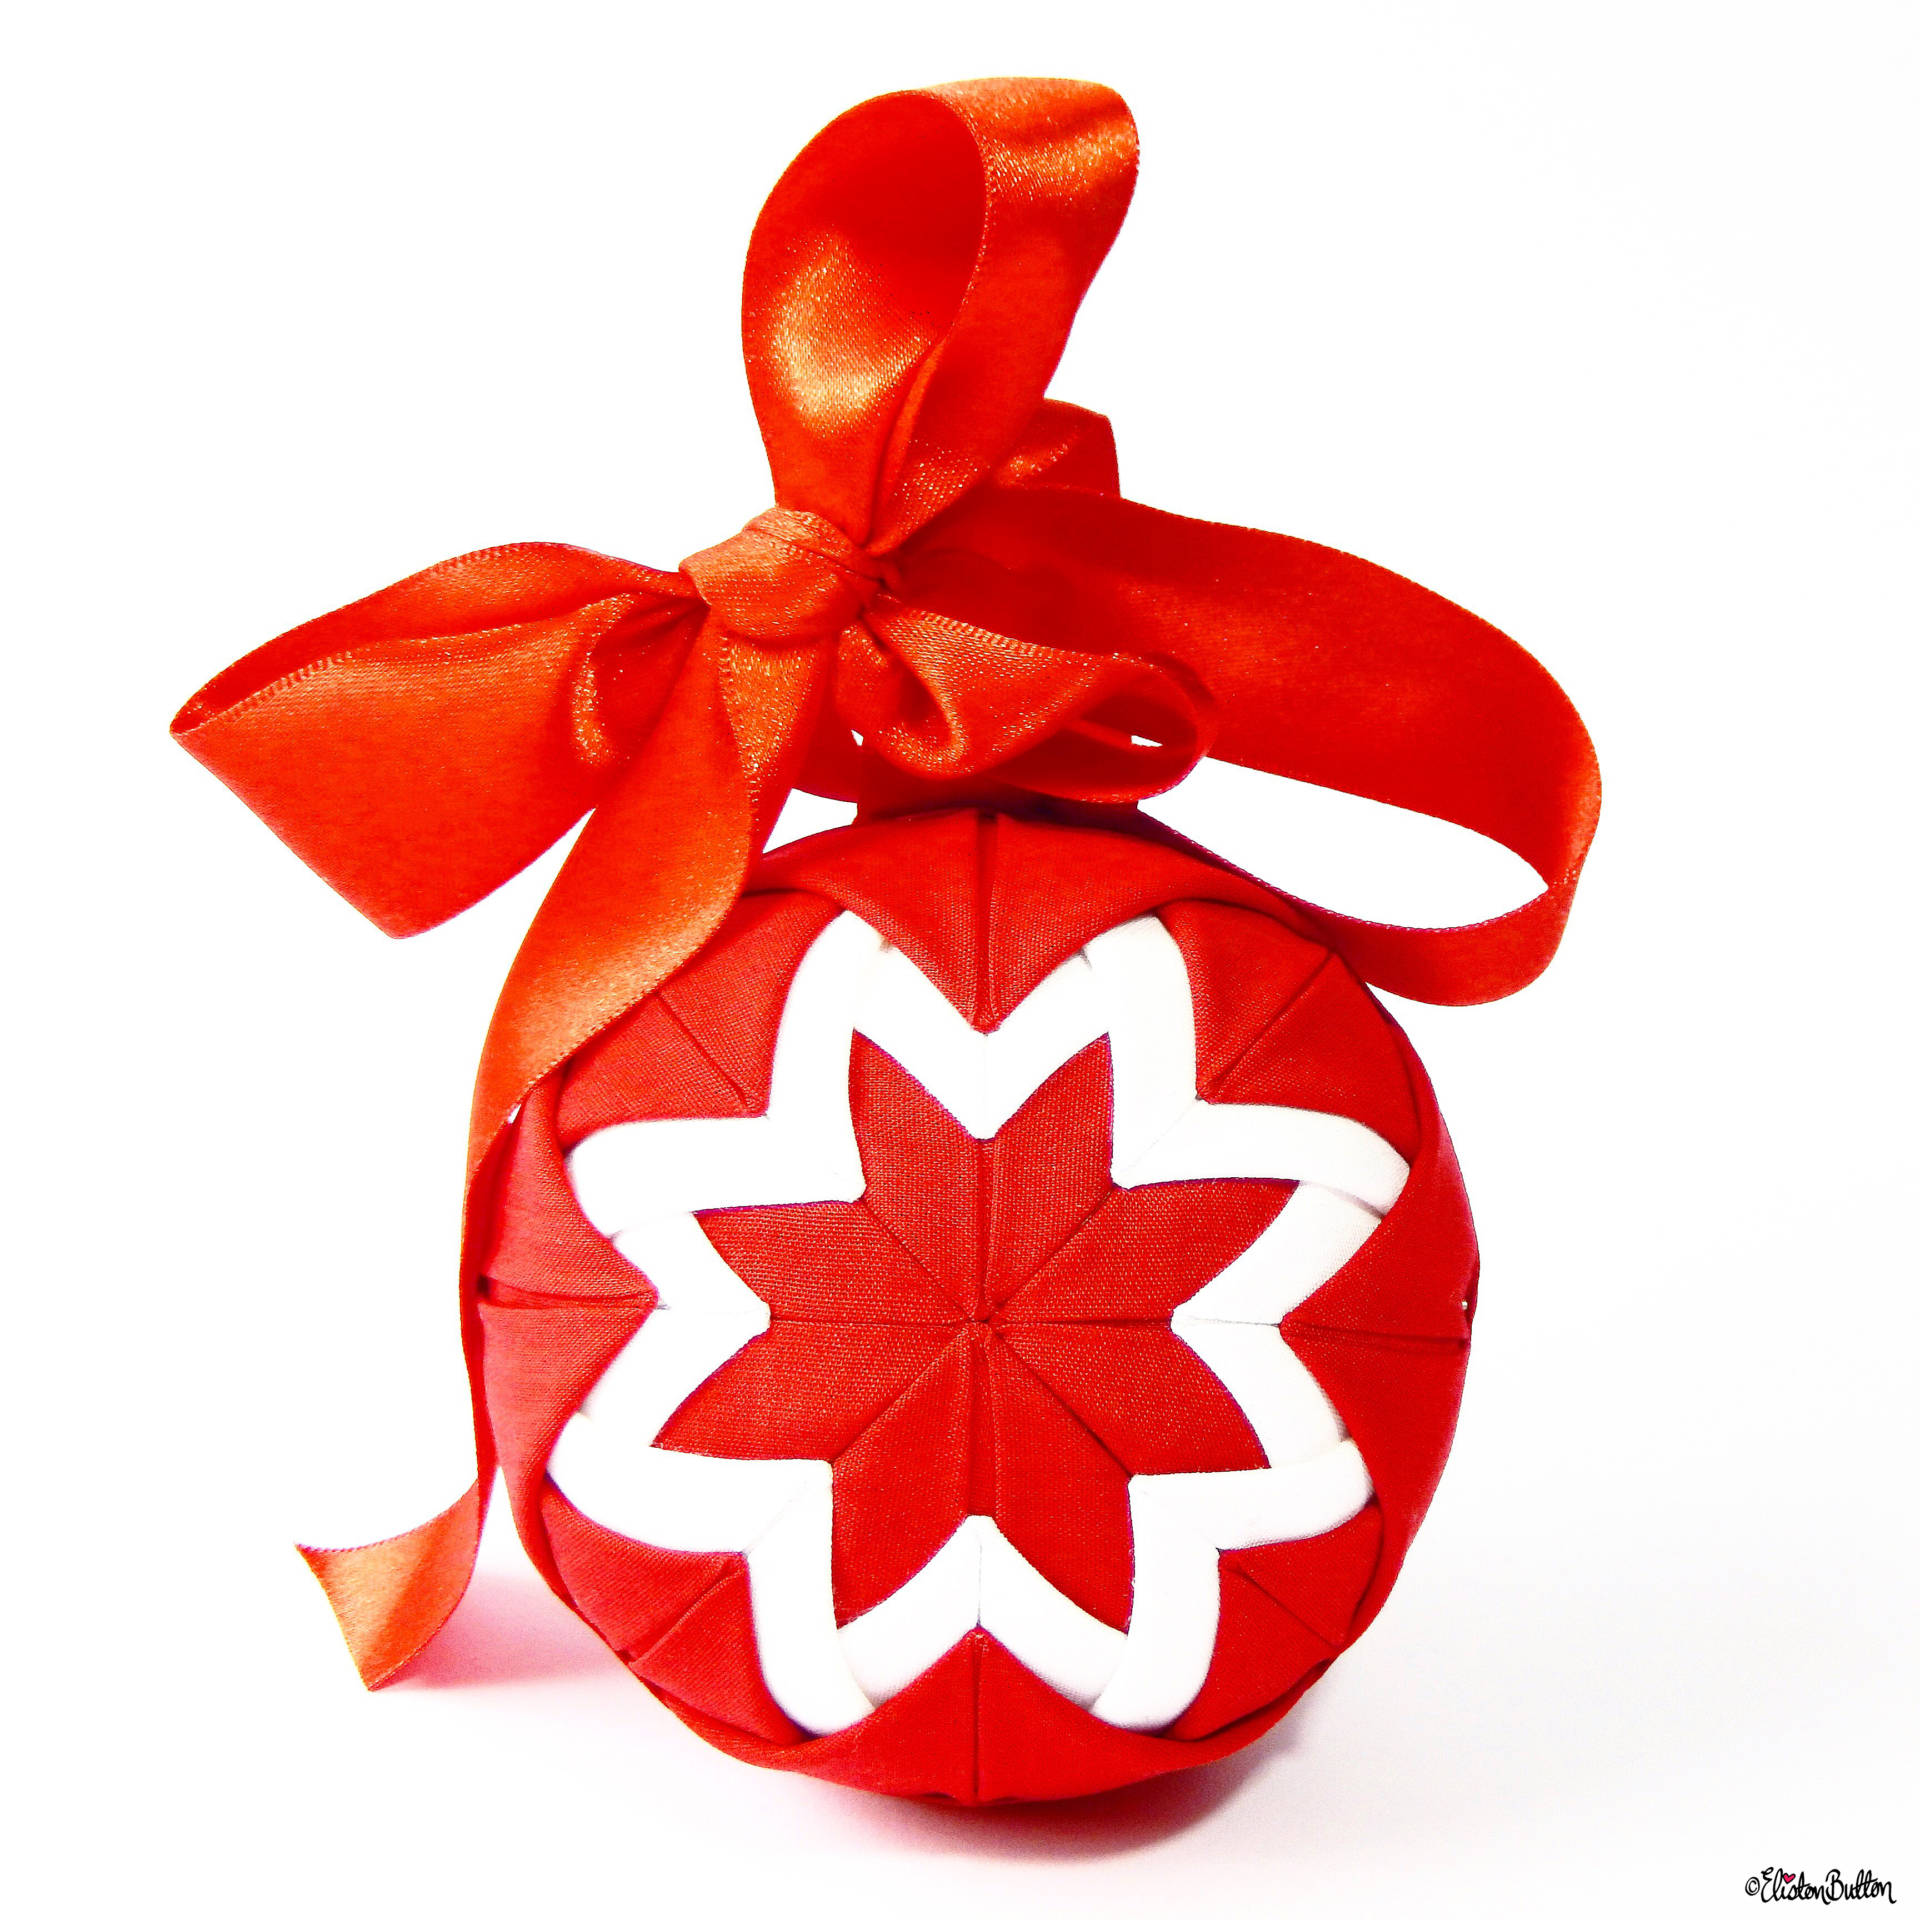 Red and White Quilted Christmas Bauble by Eliston Button - For the Love of…Christmas at www.elistonbutton.com - Eliston Button - That Crafty Kid – Art, Design, Craft & Adventure.